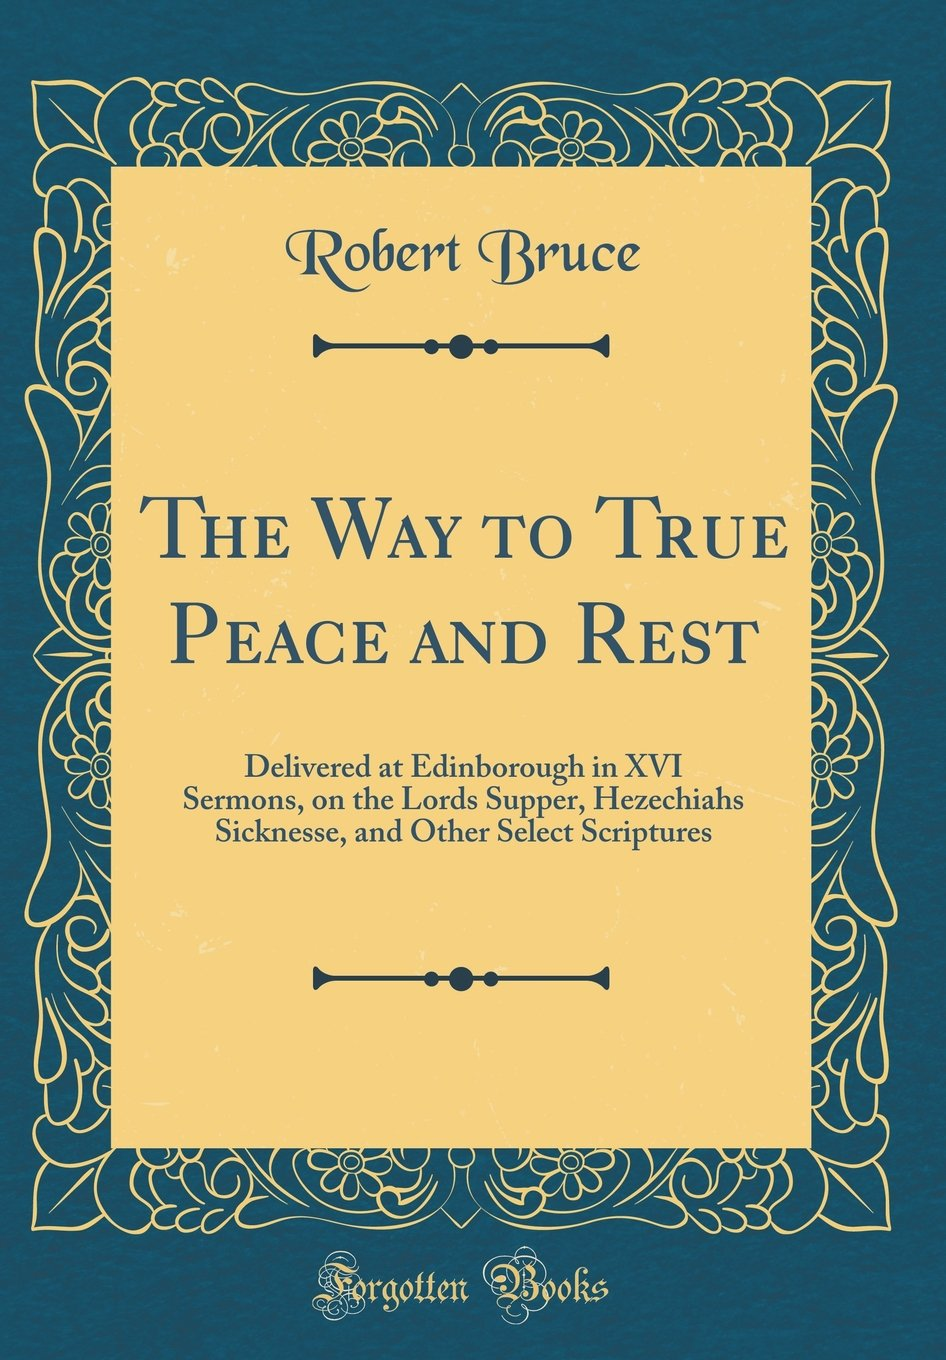 Download The Way to True Peace and Rest: Delivered at Edinborough in XVI Sermons, on the Lords Supper, Hezechiahs Sicknesse, and Other Select Scriptures (Classic Reprint) pdf epub